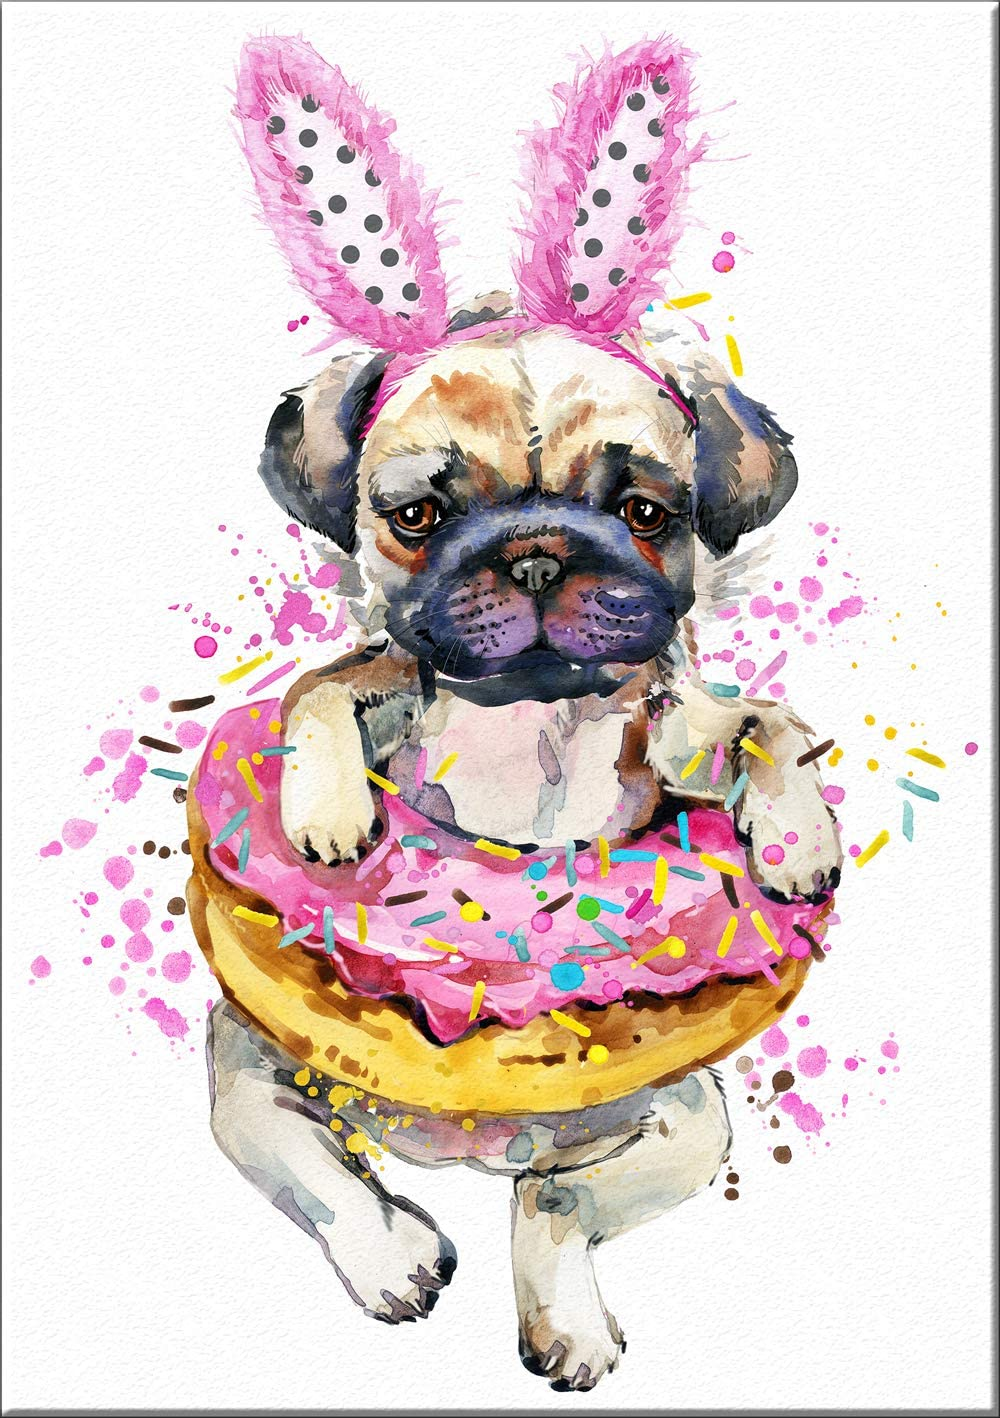 7Dots Art. Fun Popcorn, Donuts and Lollipops Dogs. Watercolor Art Print, Poster 8